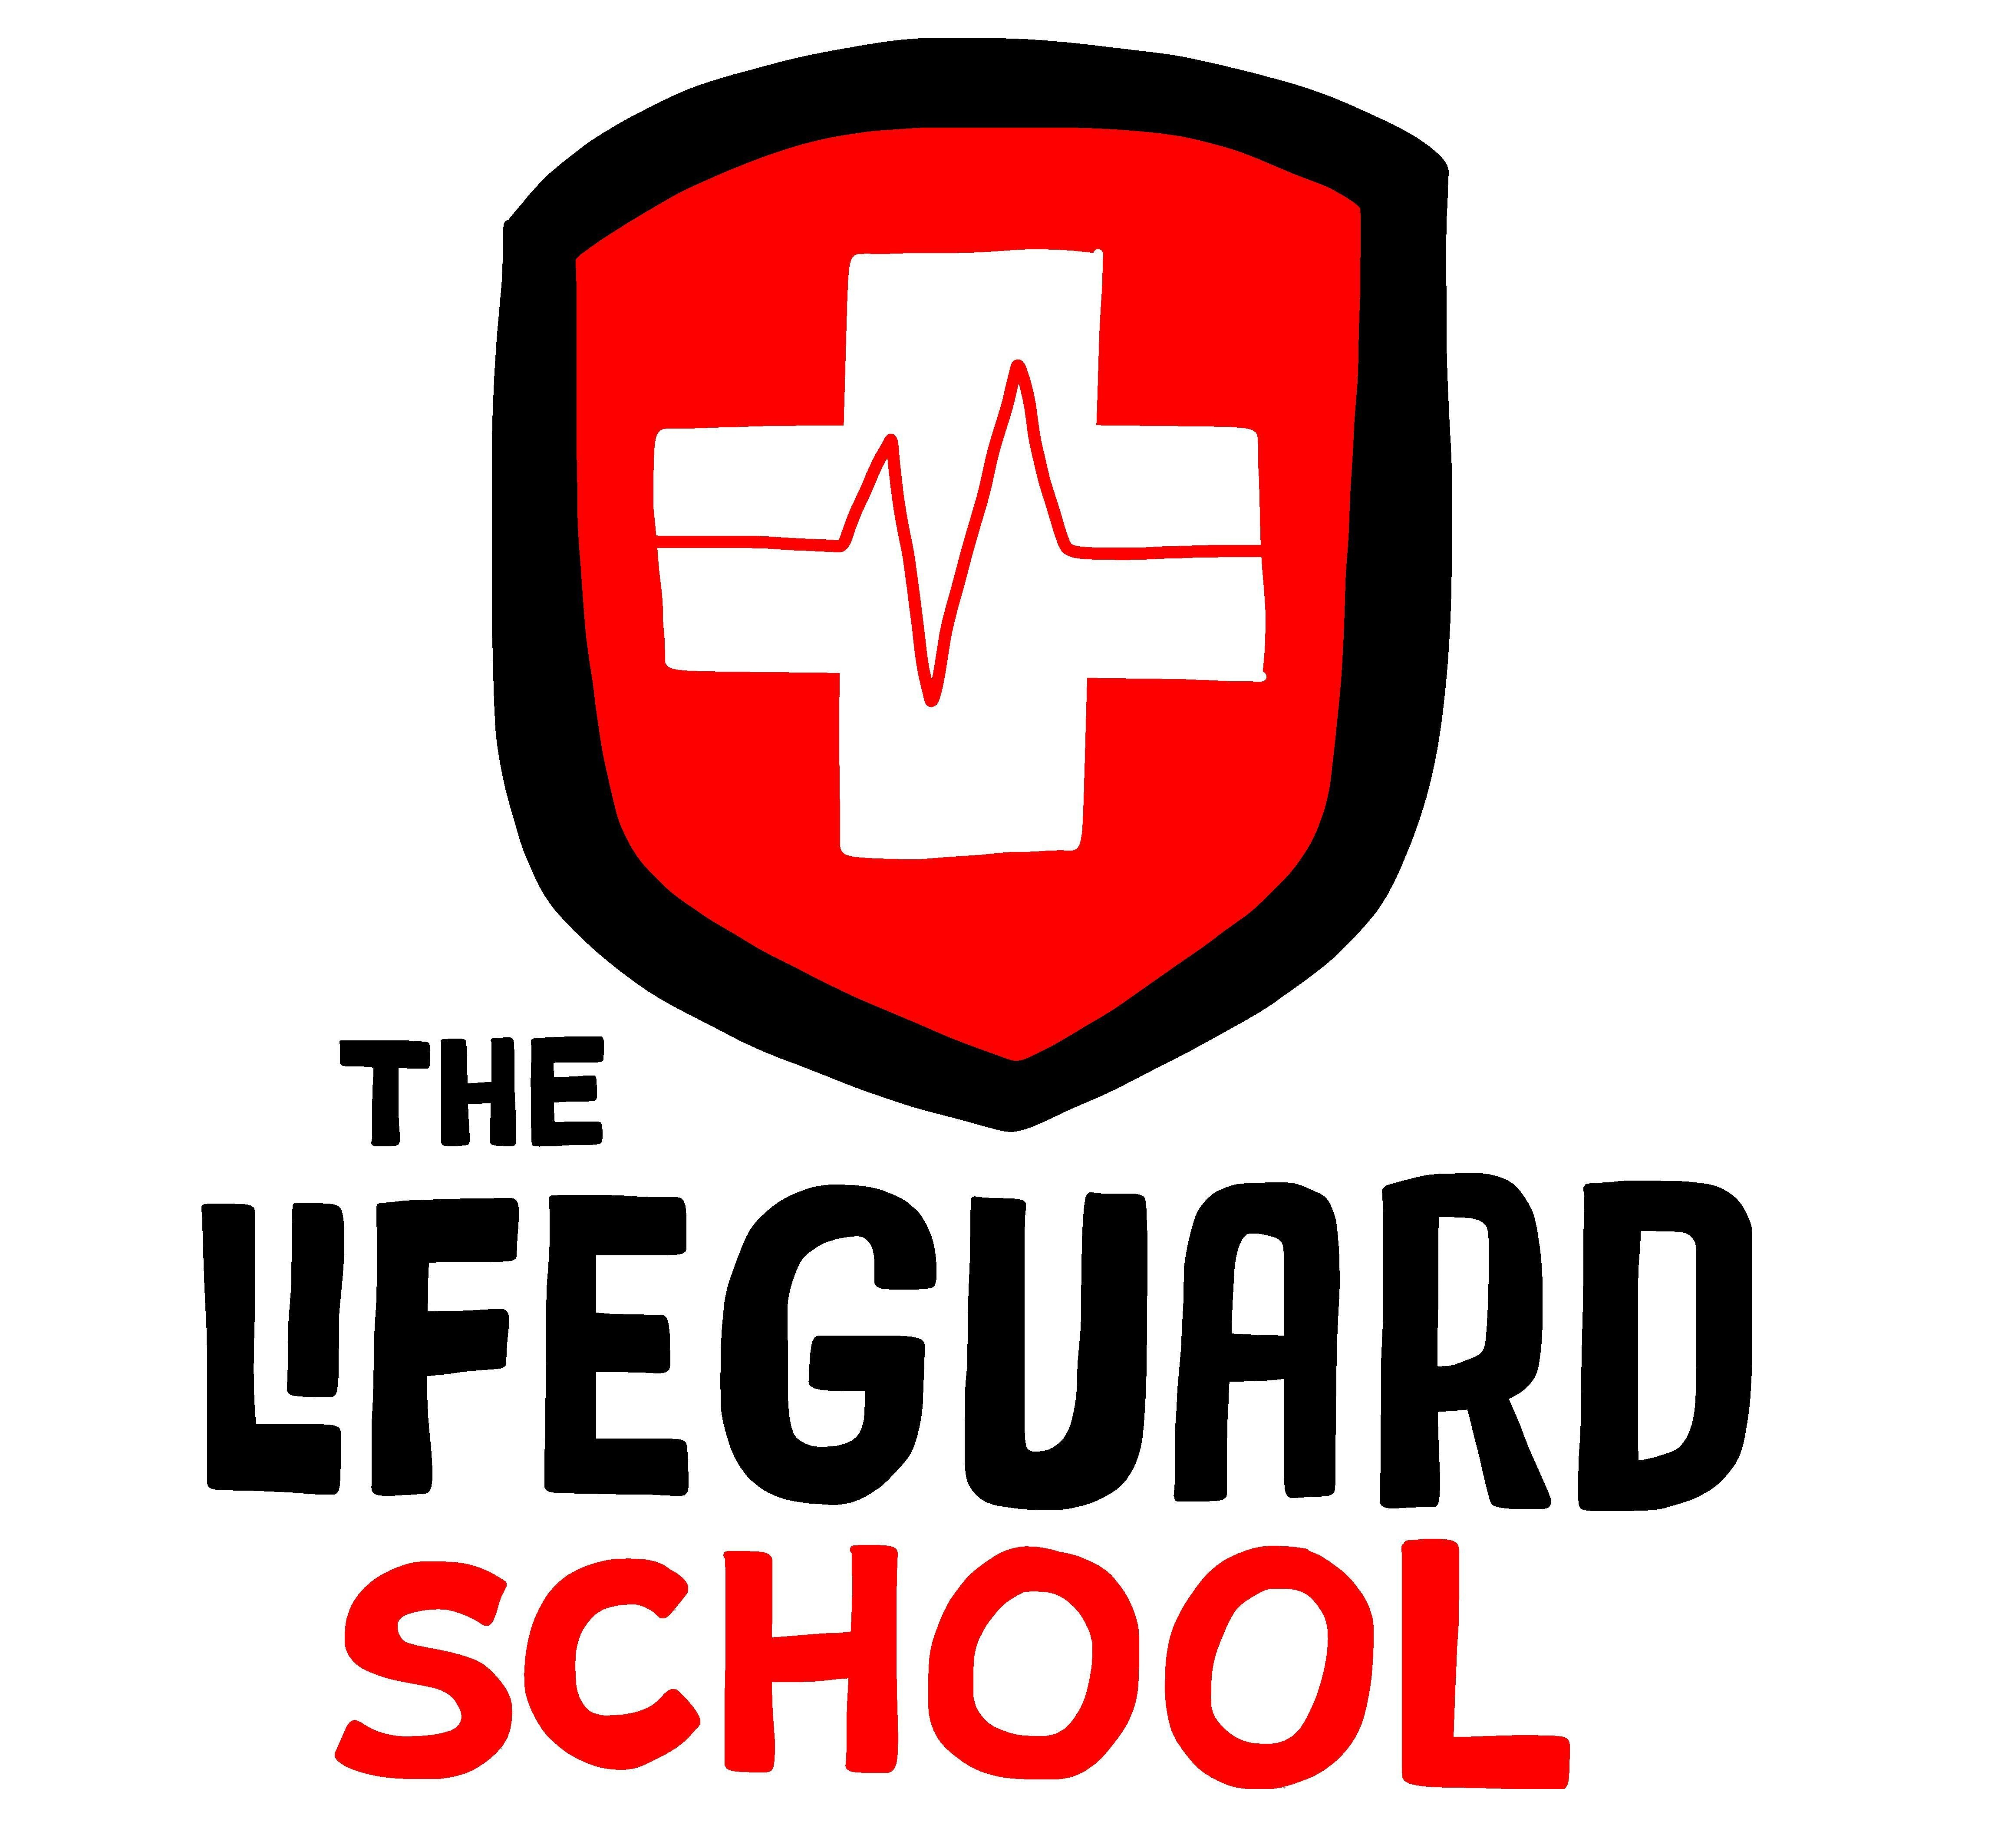 Courses offered and faq thelifeguardschool thelifeguardschool xflitez Choice Image